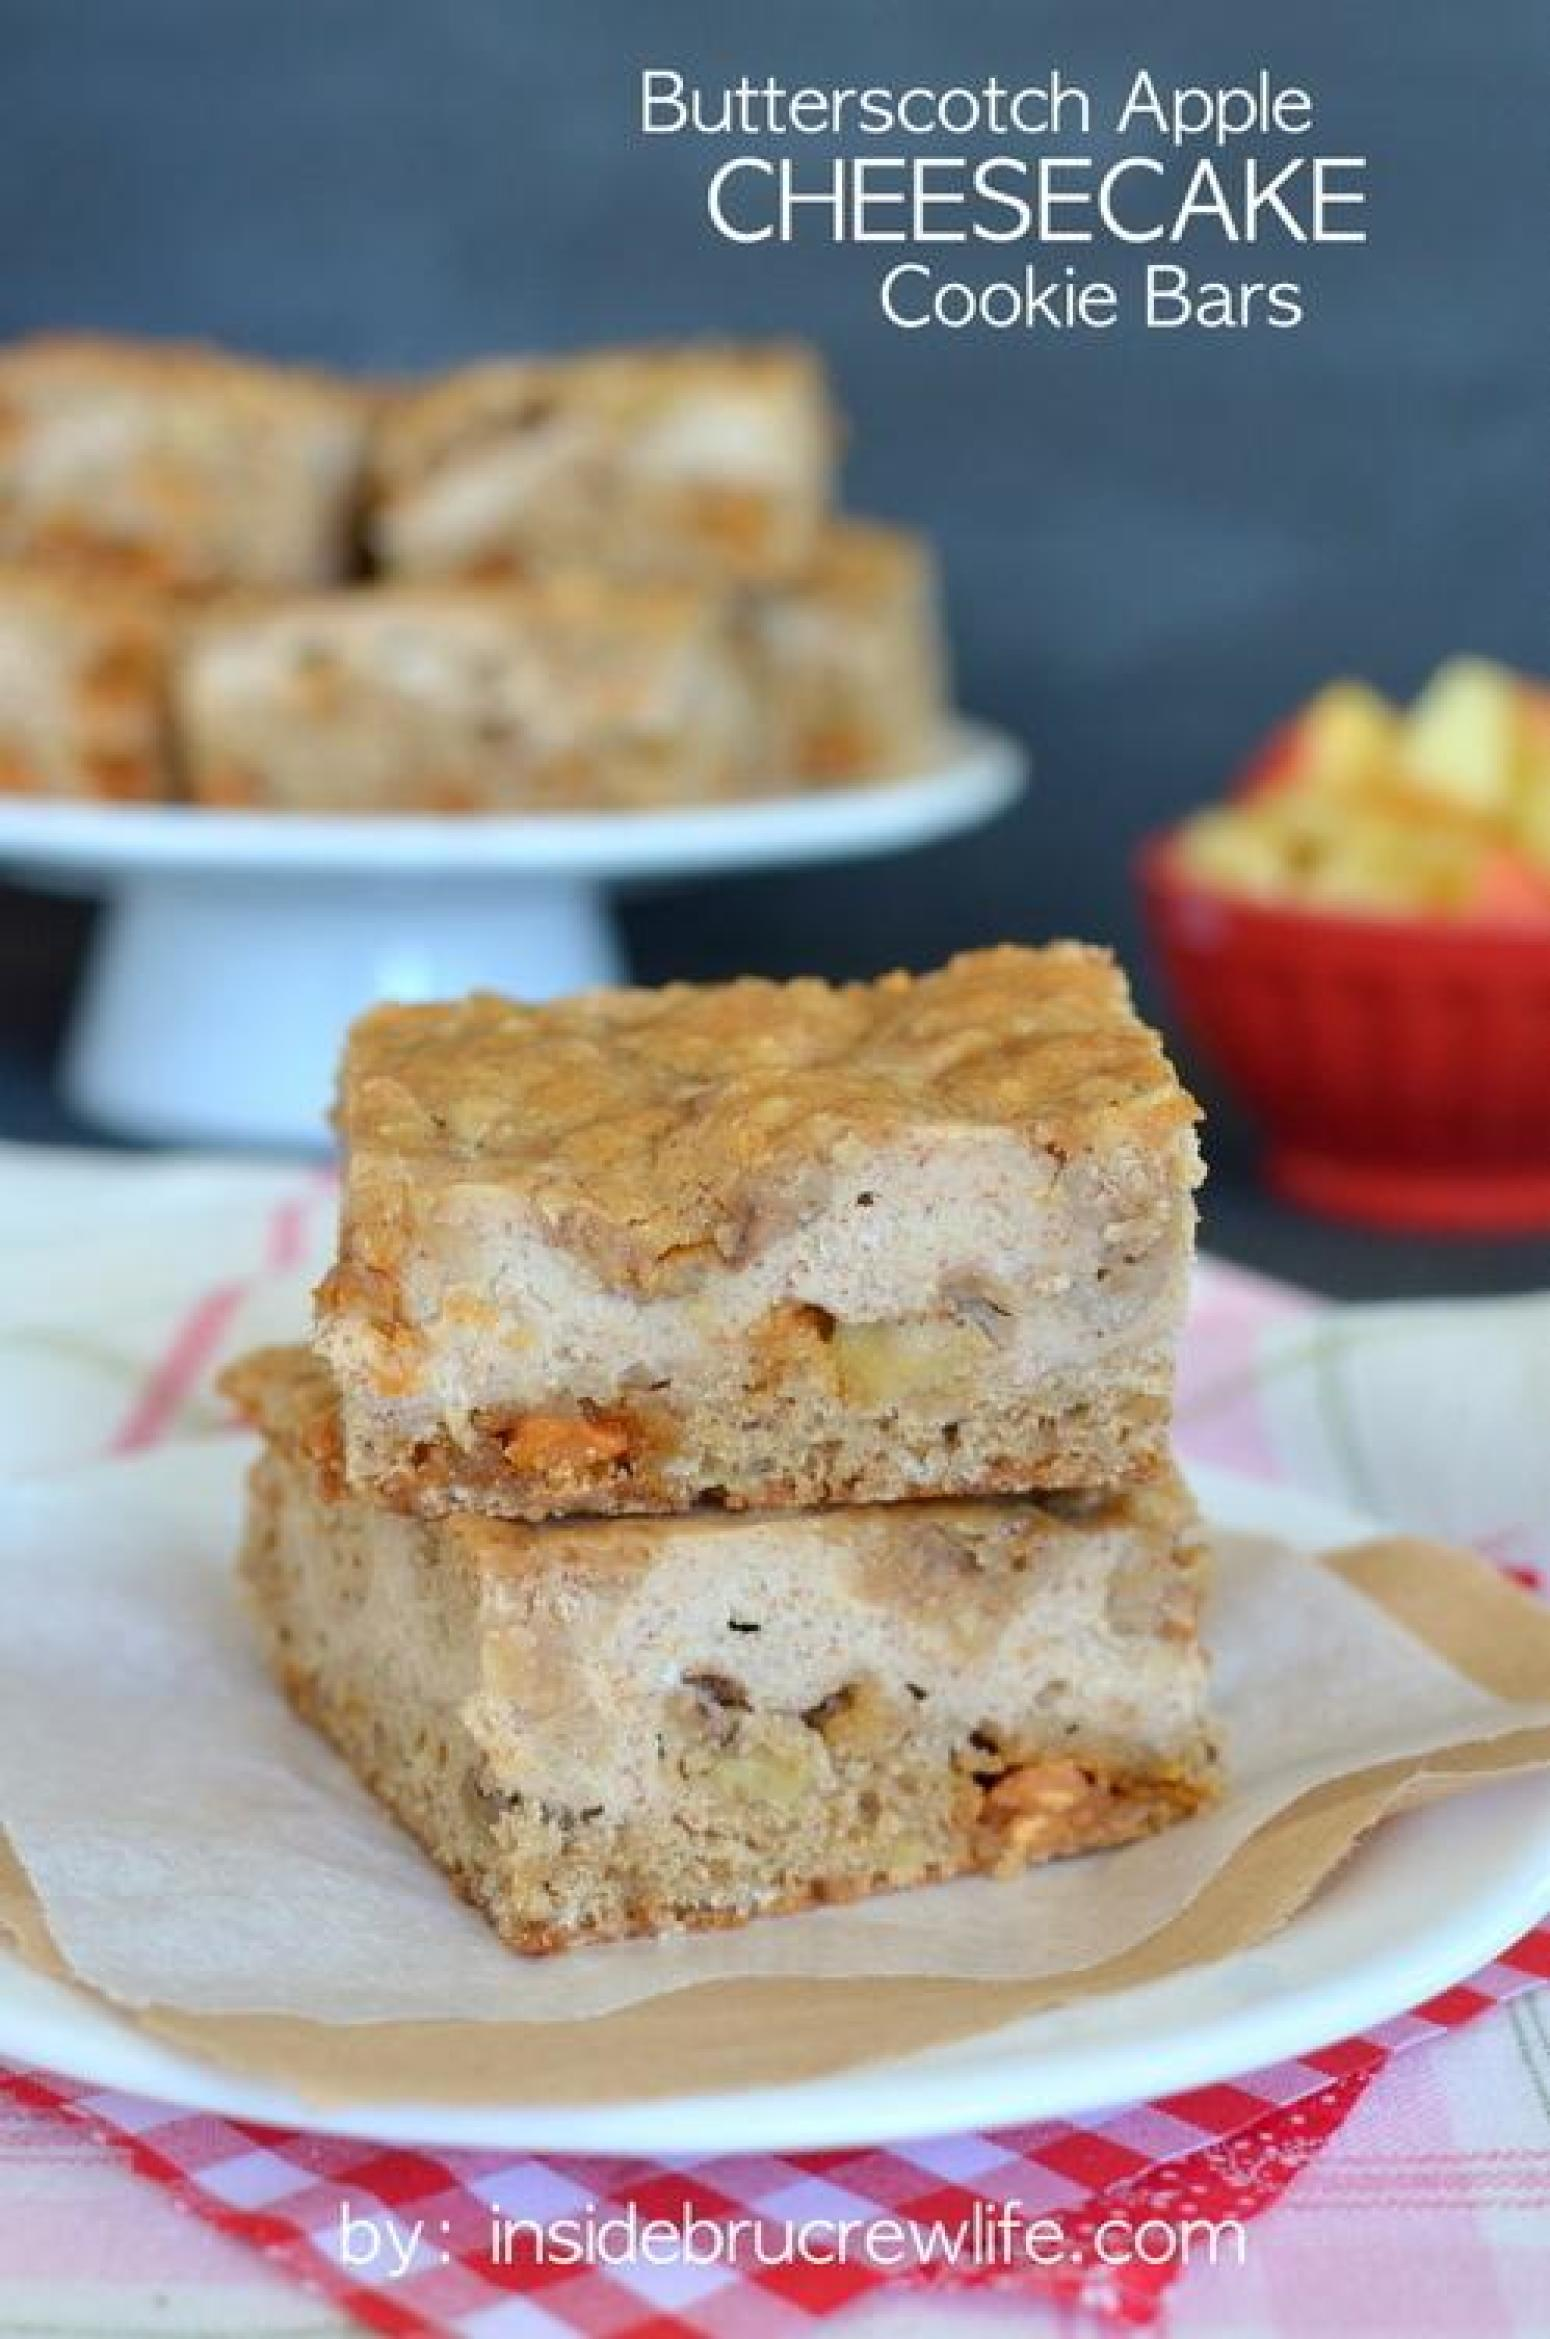 Butterscotch Apple Cheesecake Cookie Bars Recipe | Just A ...